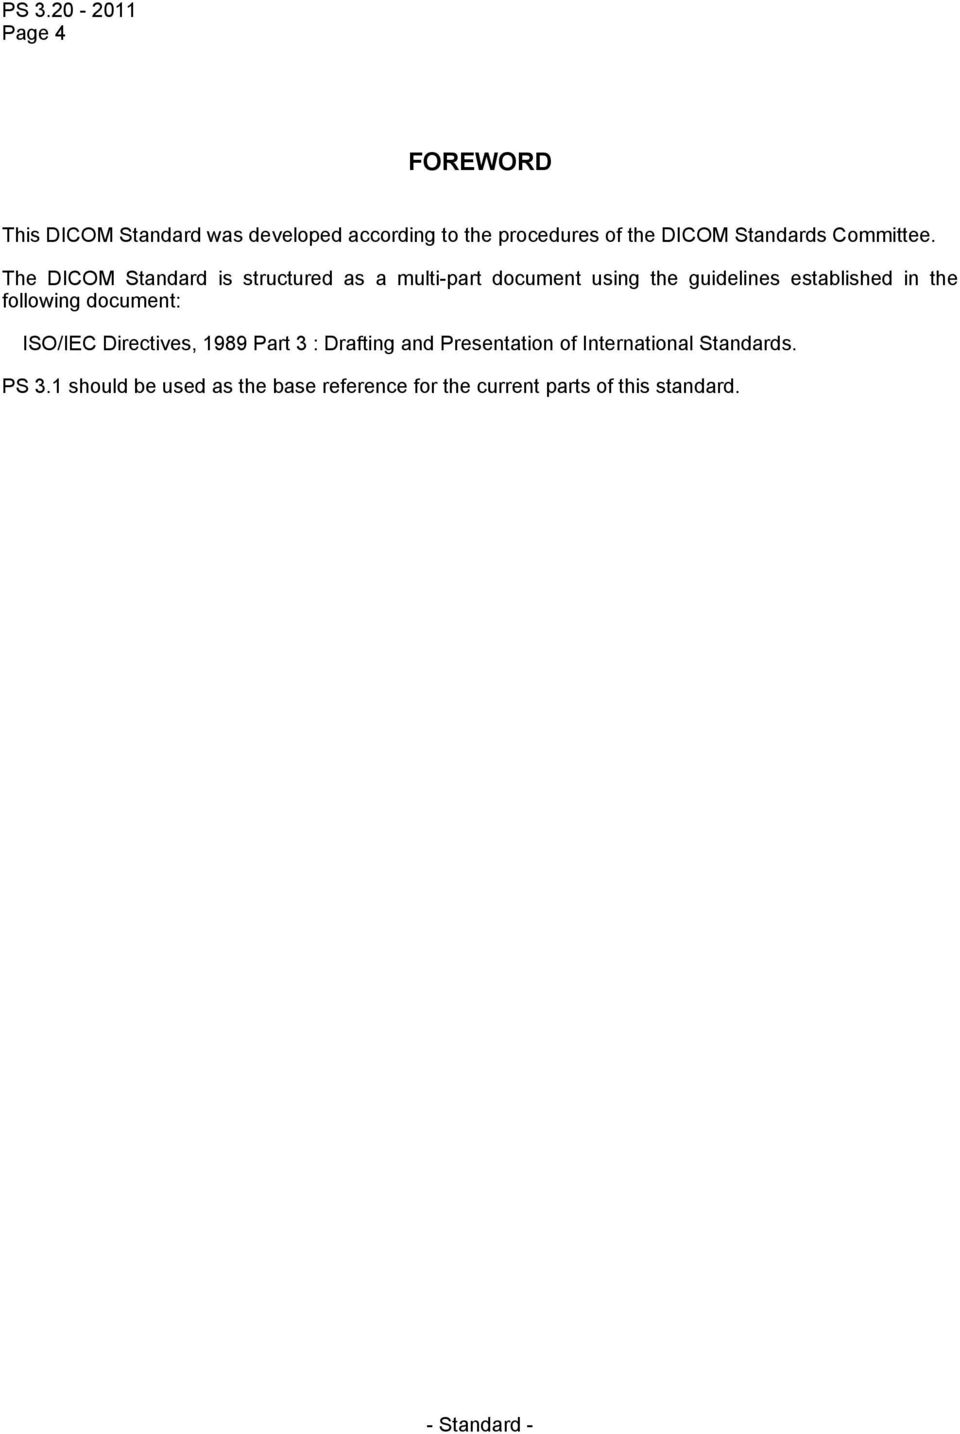 The DICOM Standard is structured as a multi-part document using the guidelines established in the